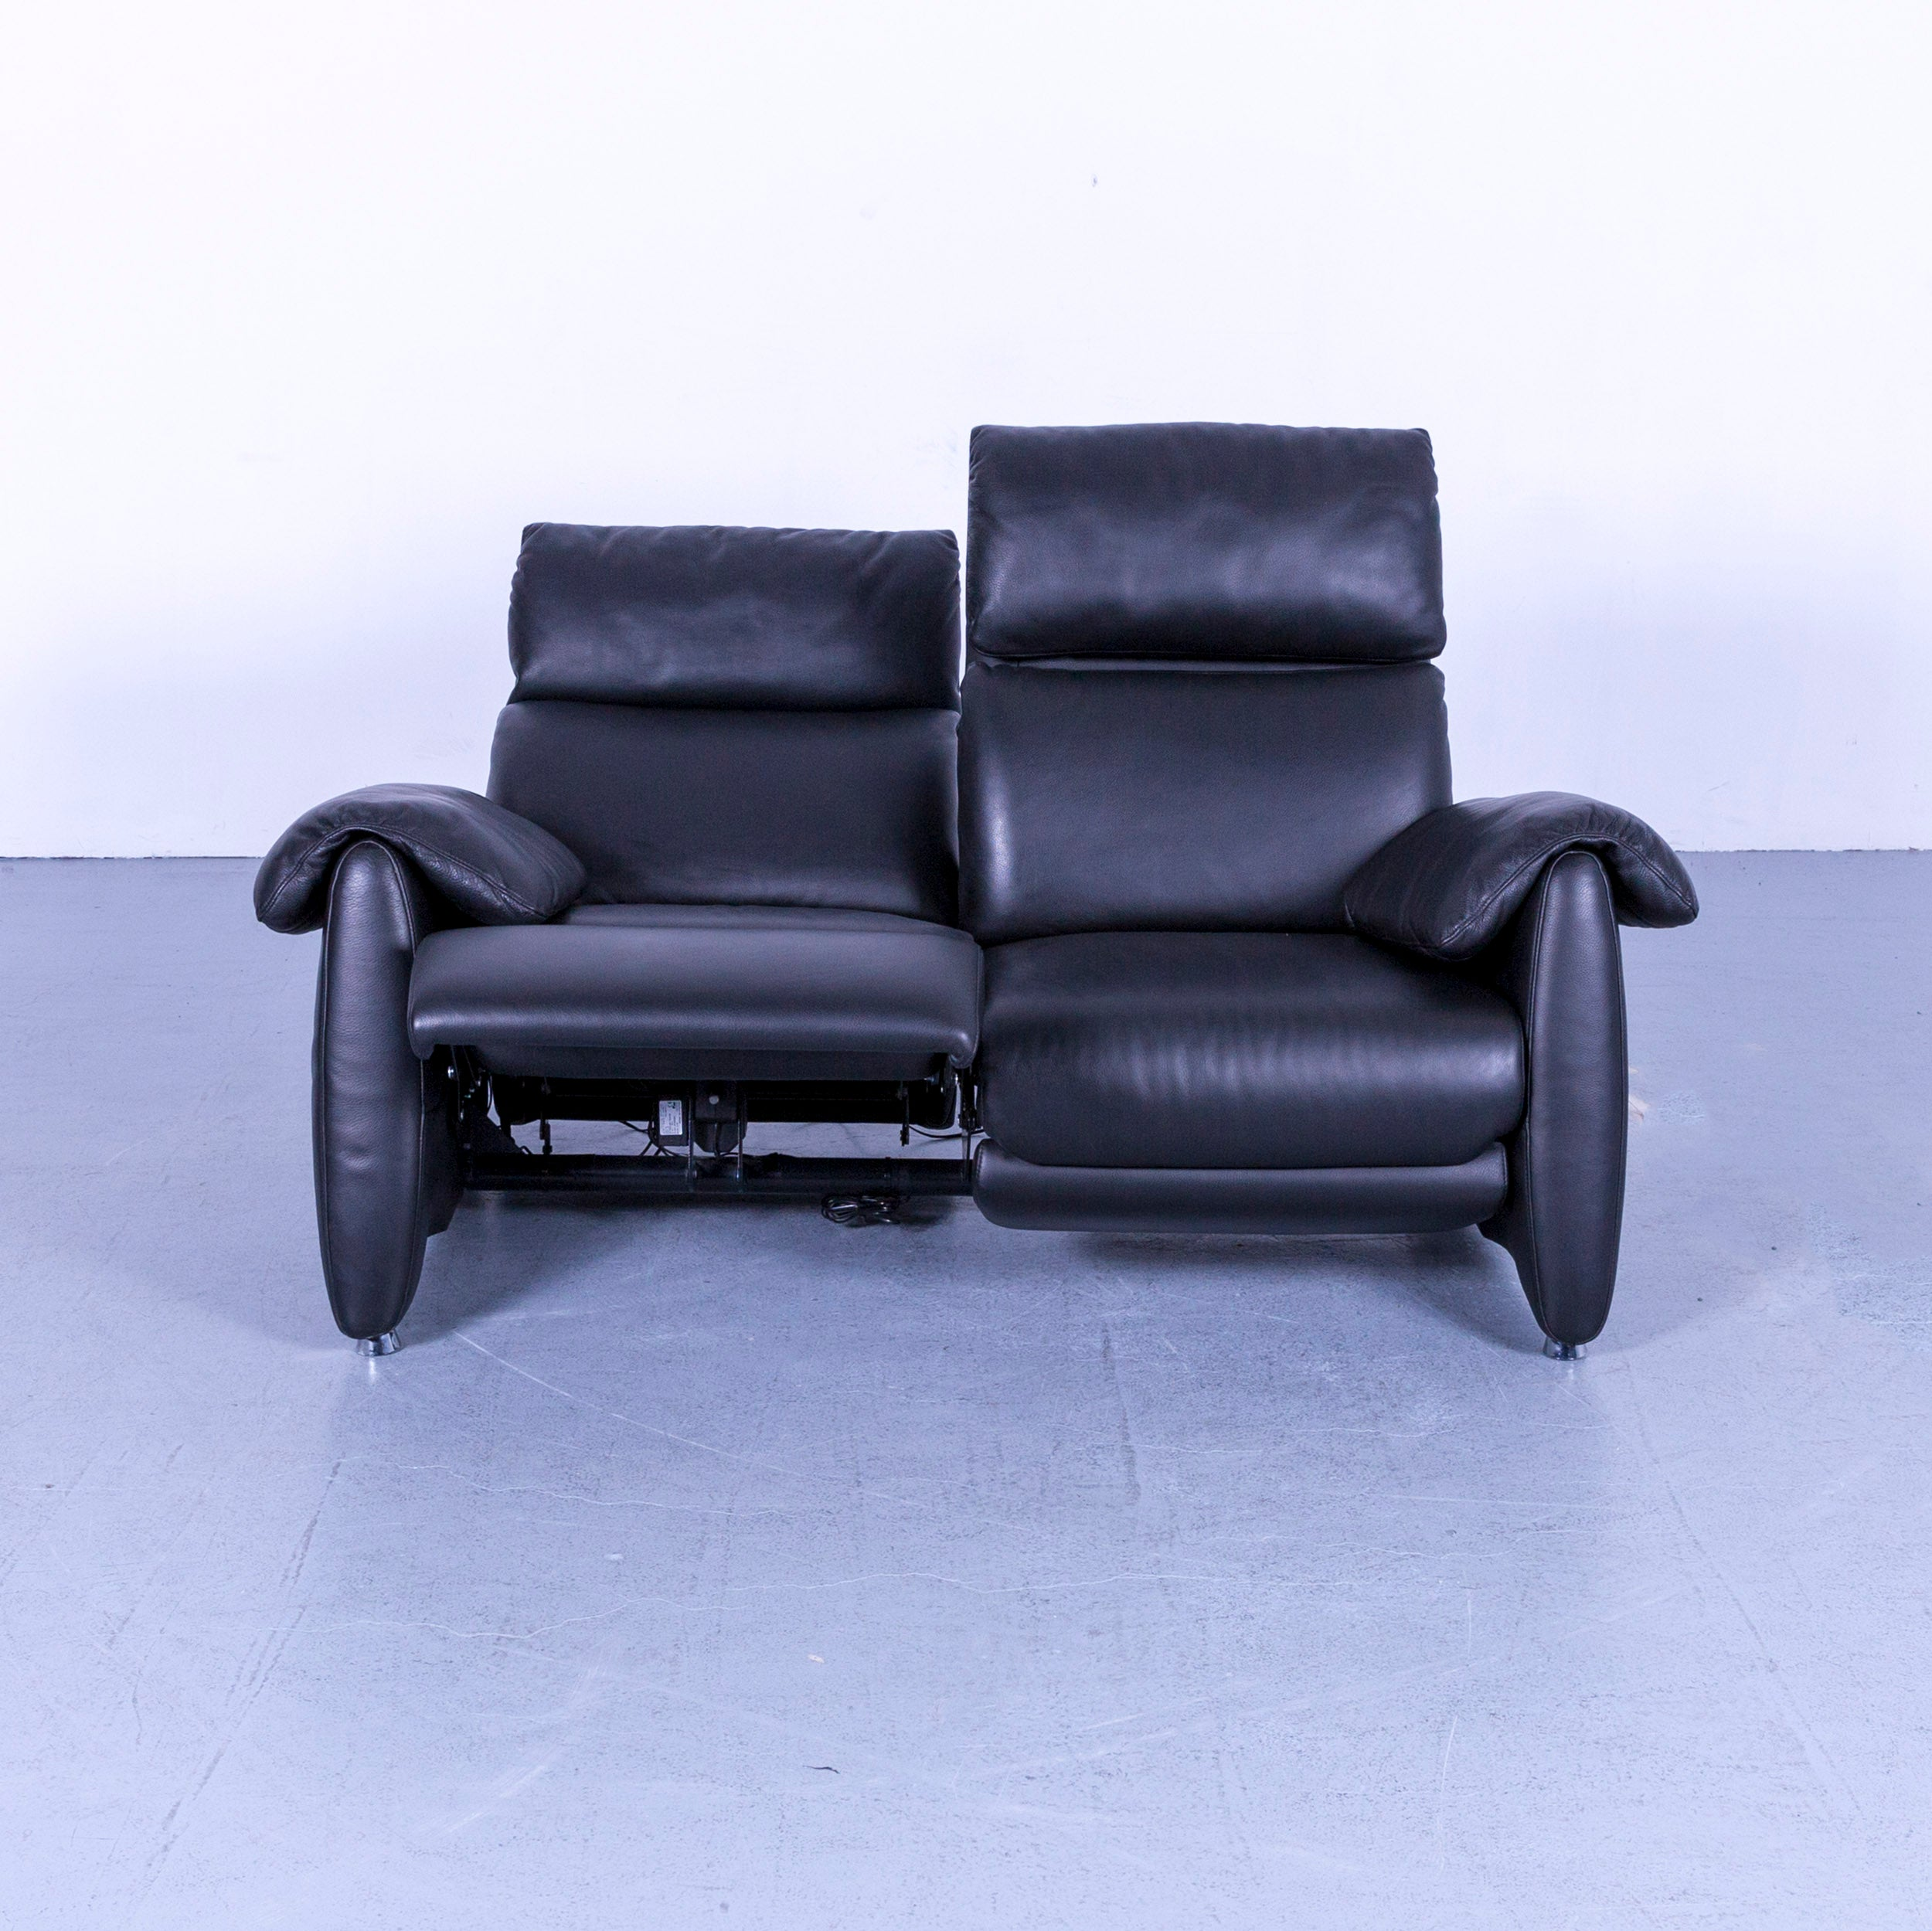 Quotes On Sofa Designer Sofa Black Leather Two Seater Couch Modern Electric Recliner